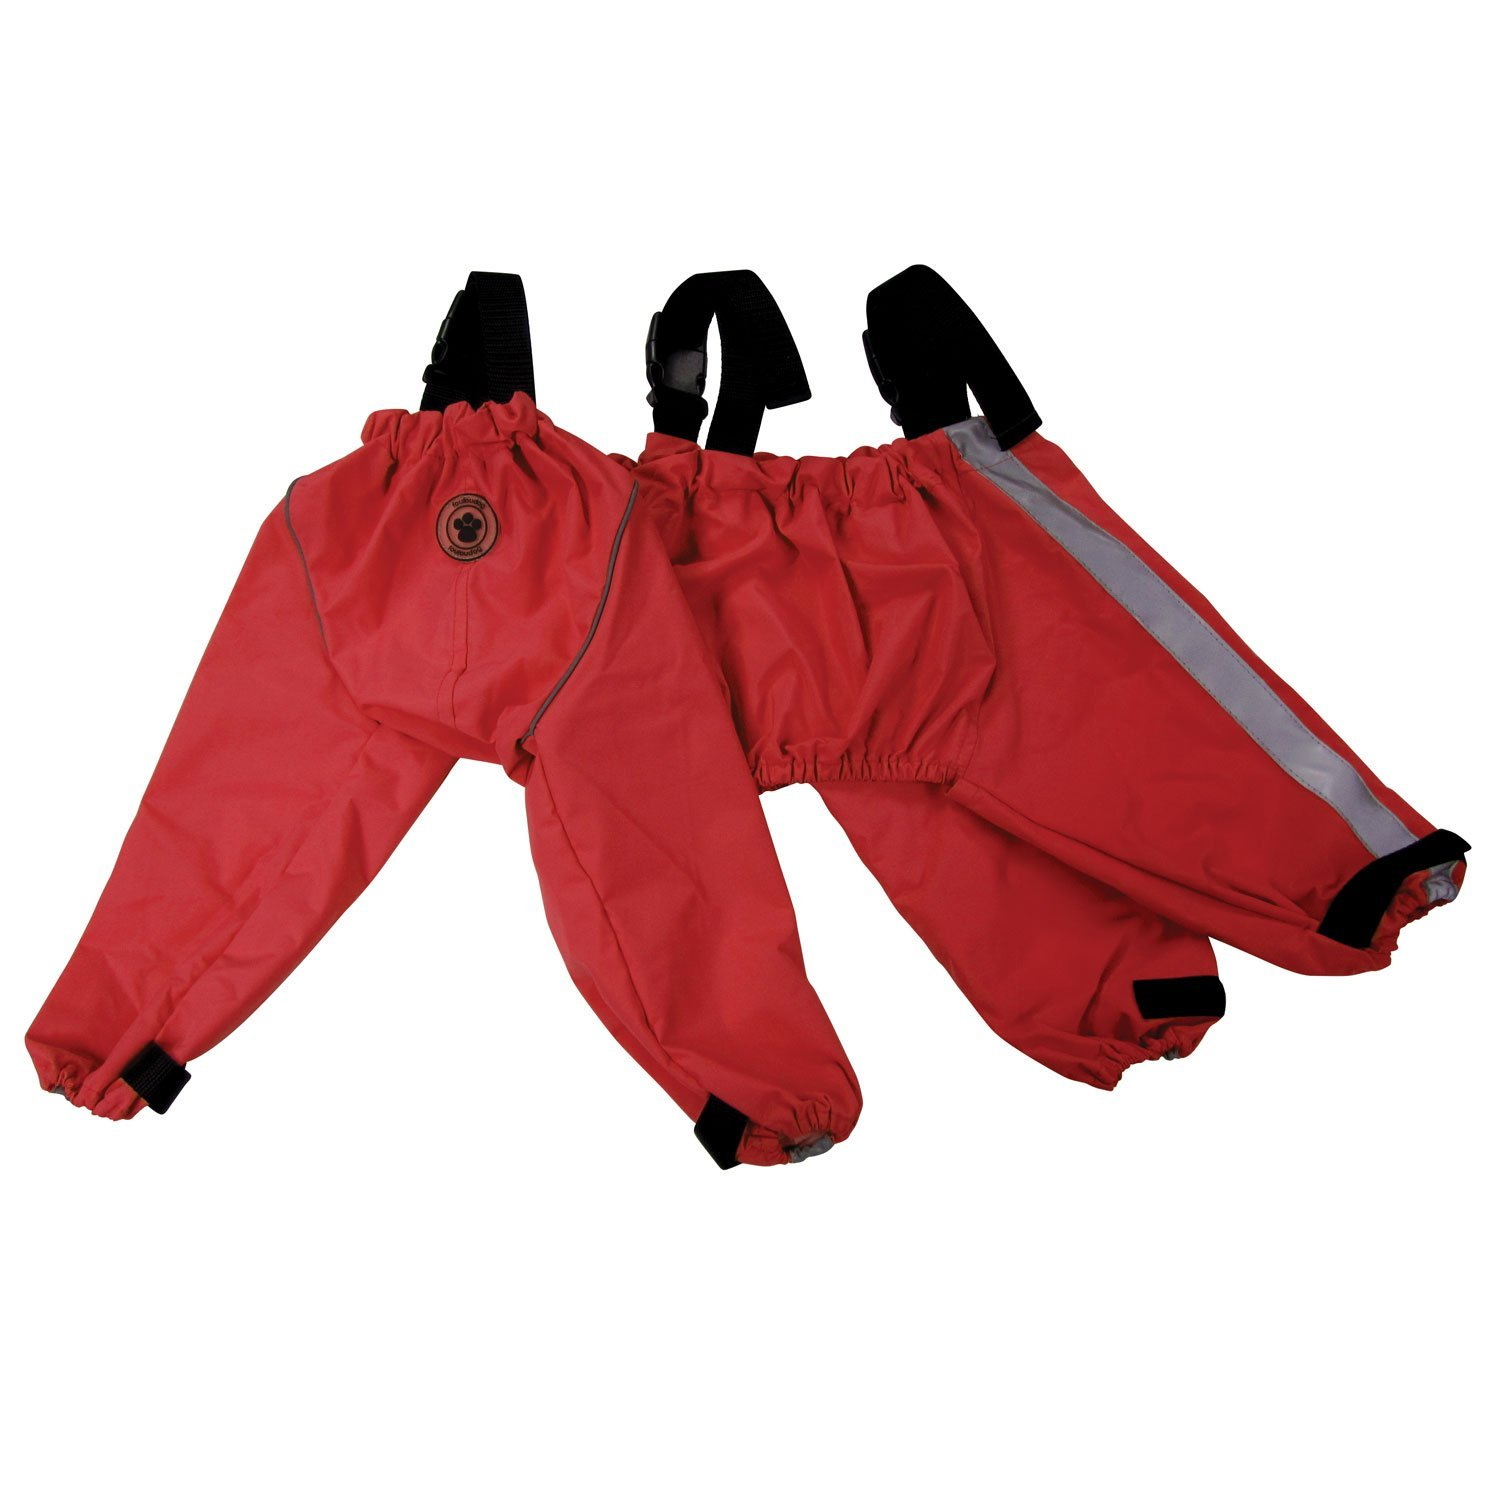 FouFou Dog Bodyguard Protective All-Weather Dog Pants